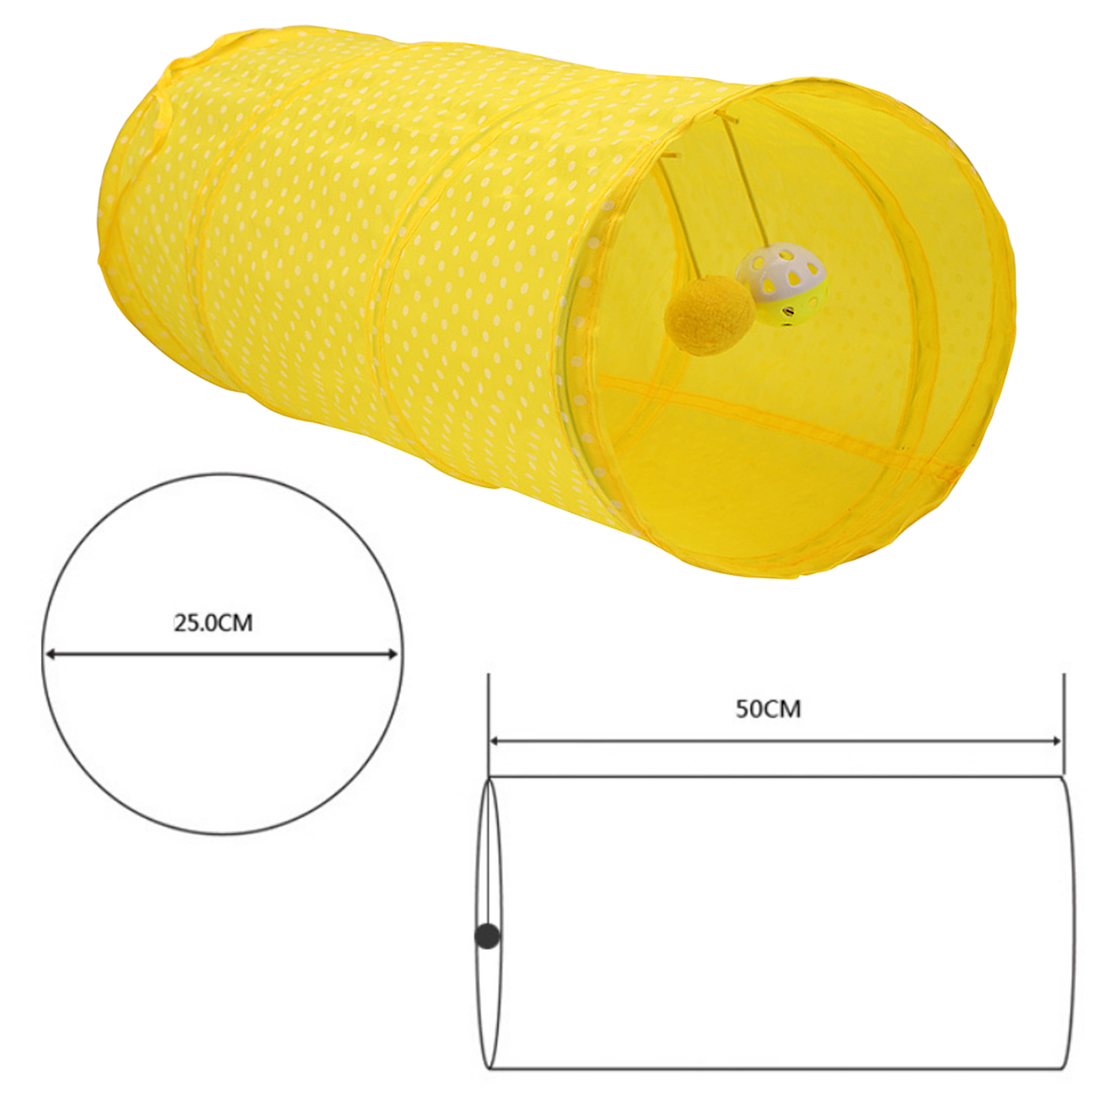 New Polka Dot Pet Cat Tunnel Funny Cat Long Tunnel Kitten Play Toy Collapsible Bulk Cat Toys Rabbit Play Tunnel